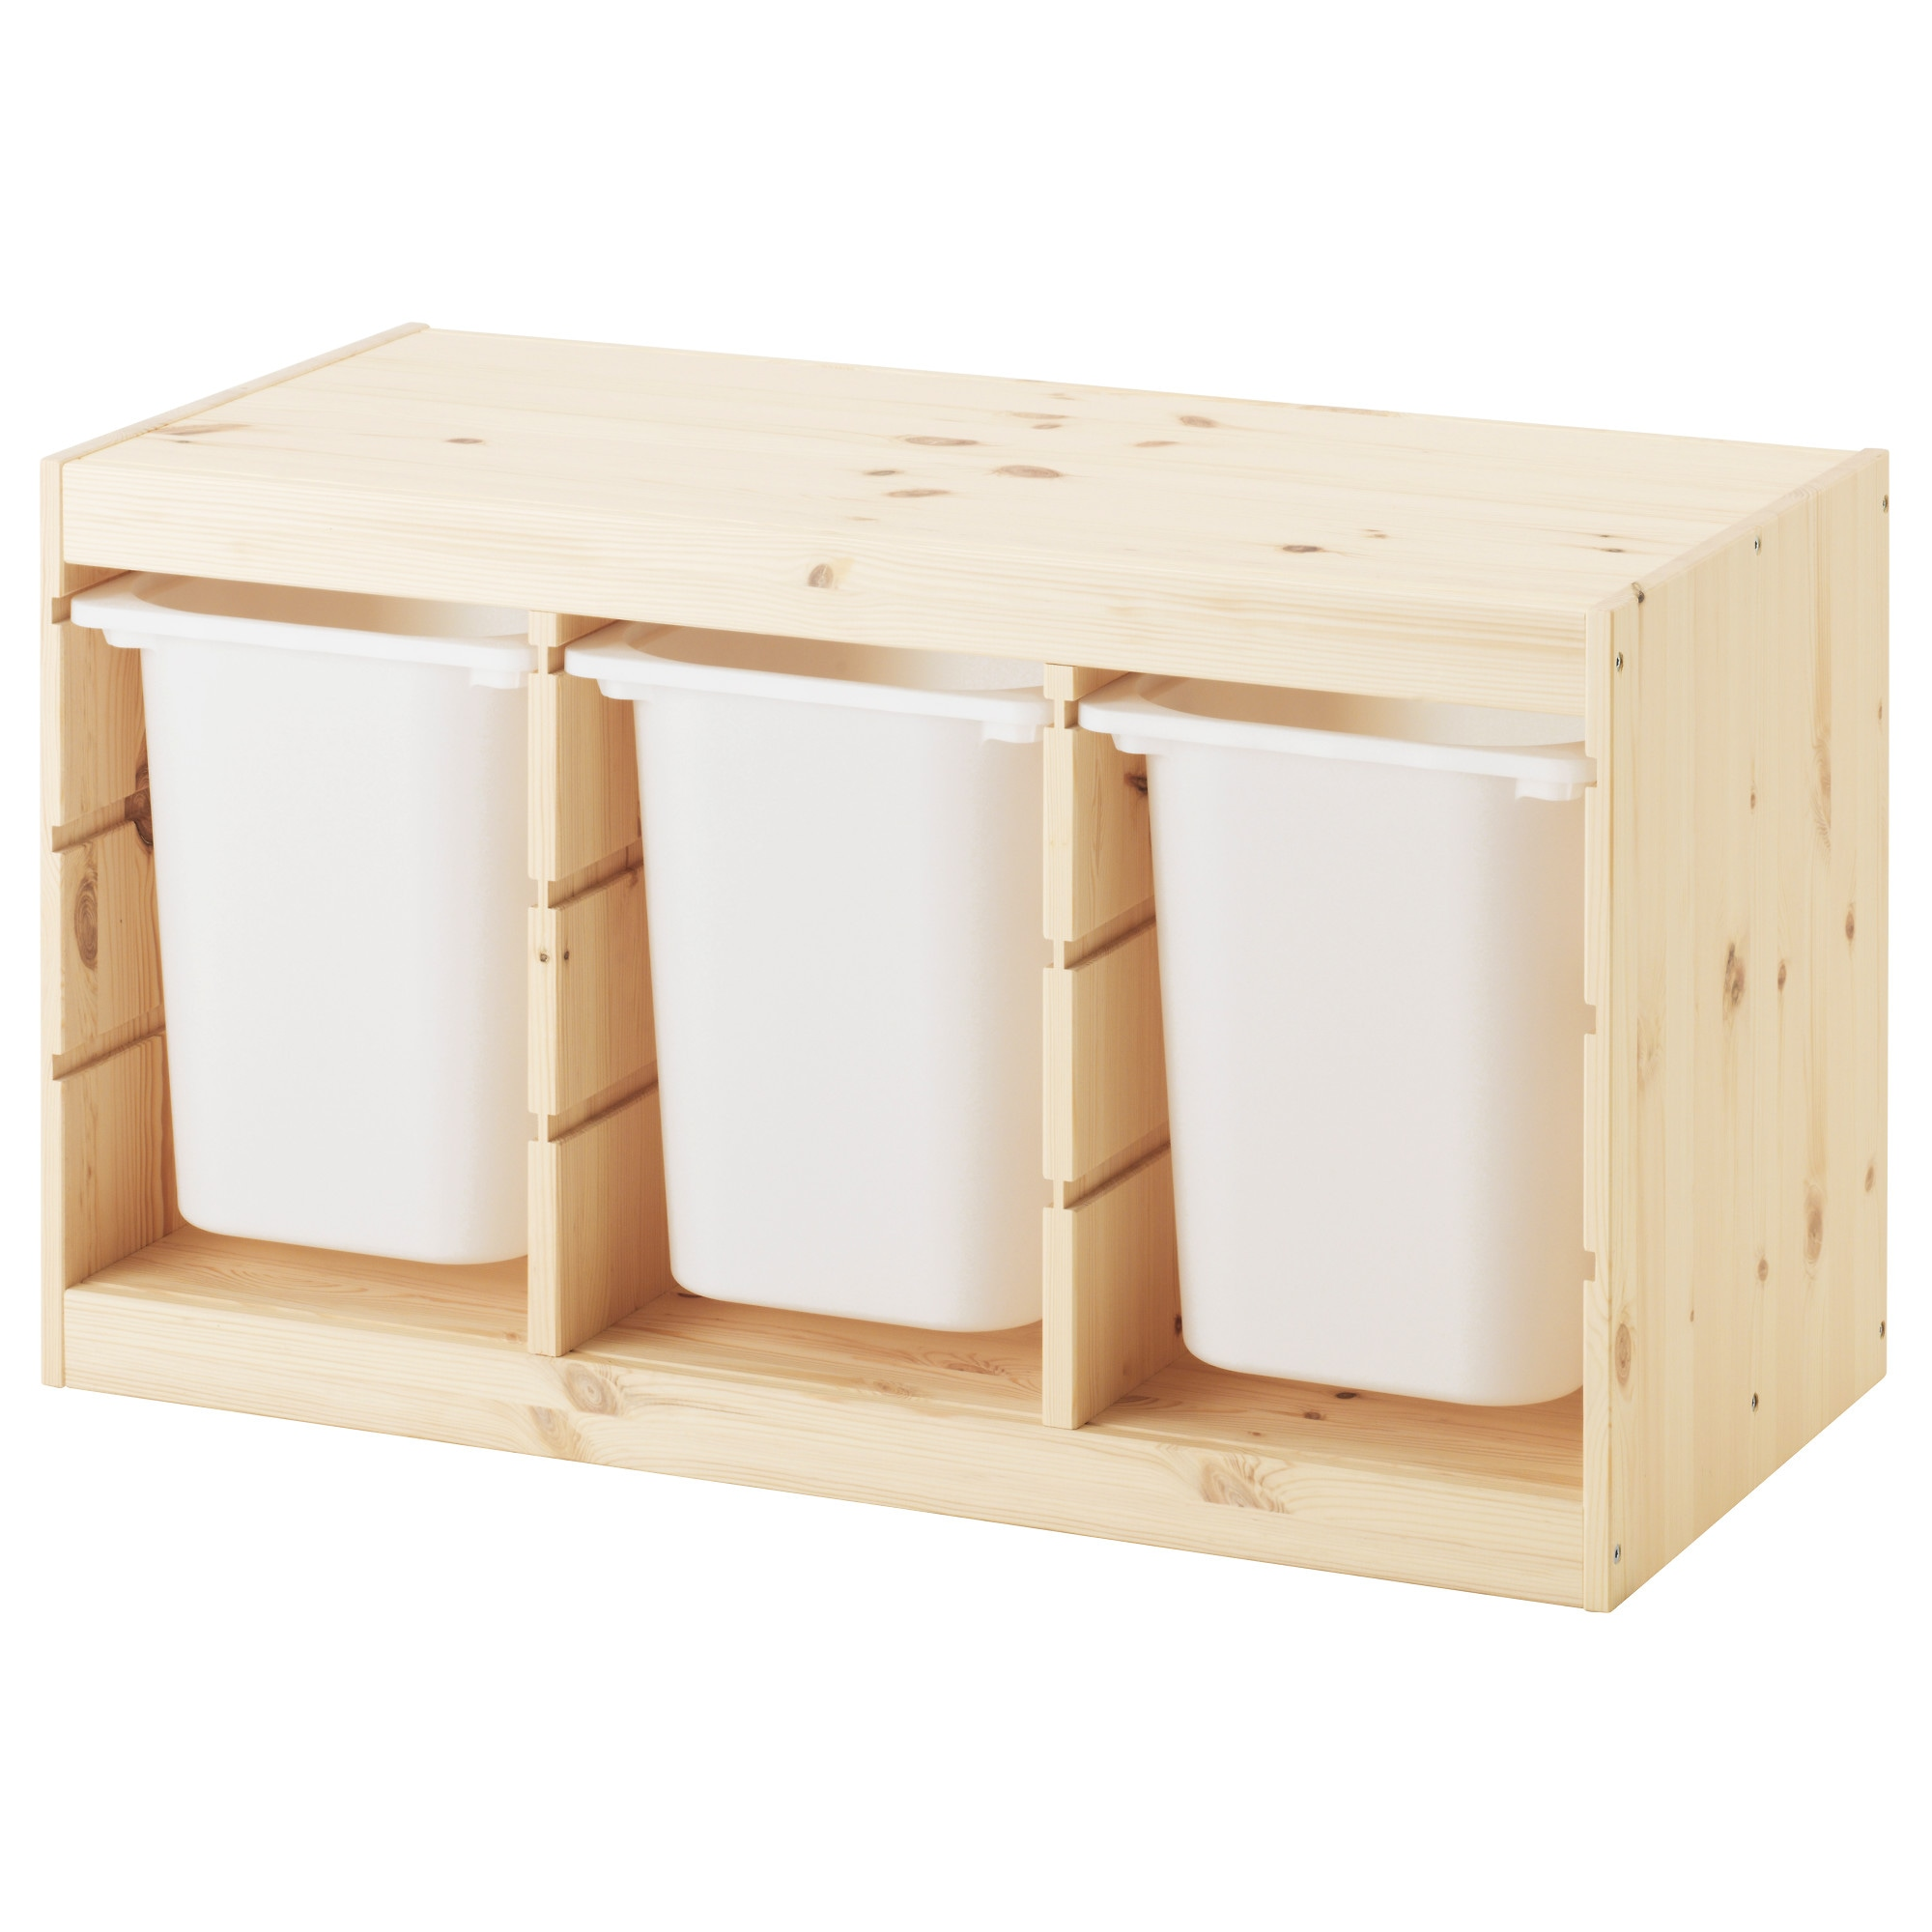 kids' storage furniture  ikea - trofast storage combination with boxes pine light white stained pinewhite width